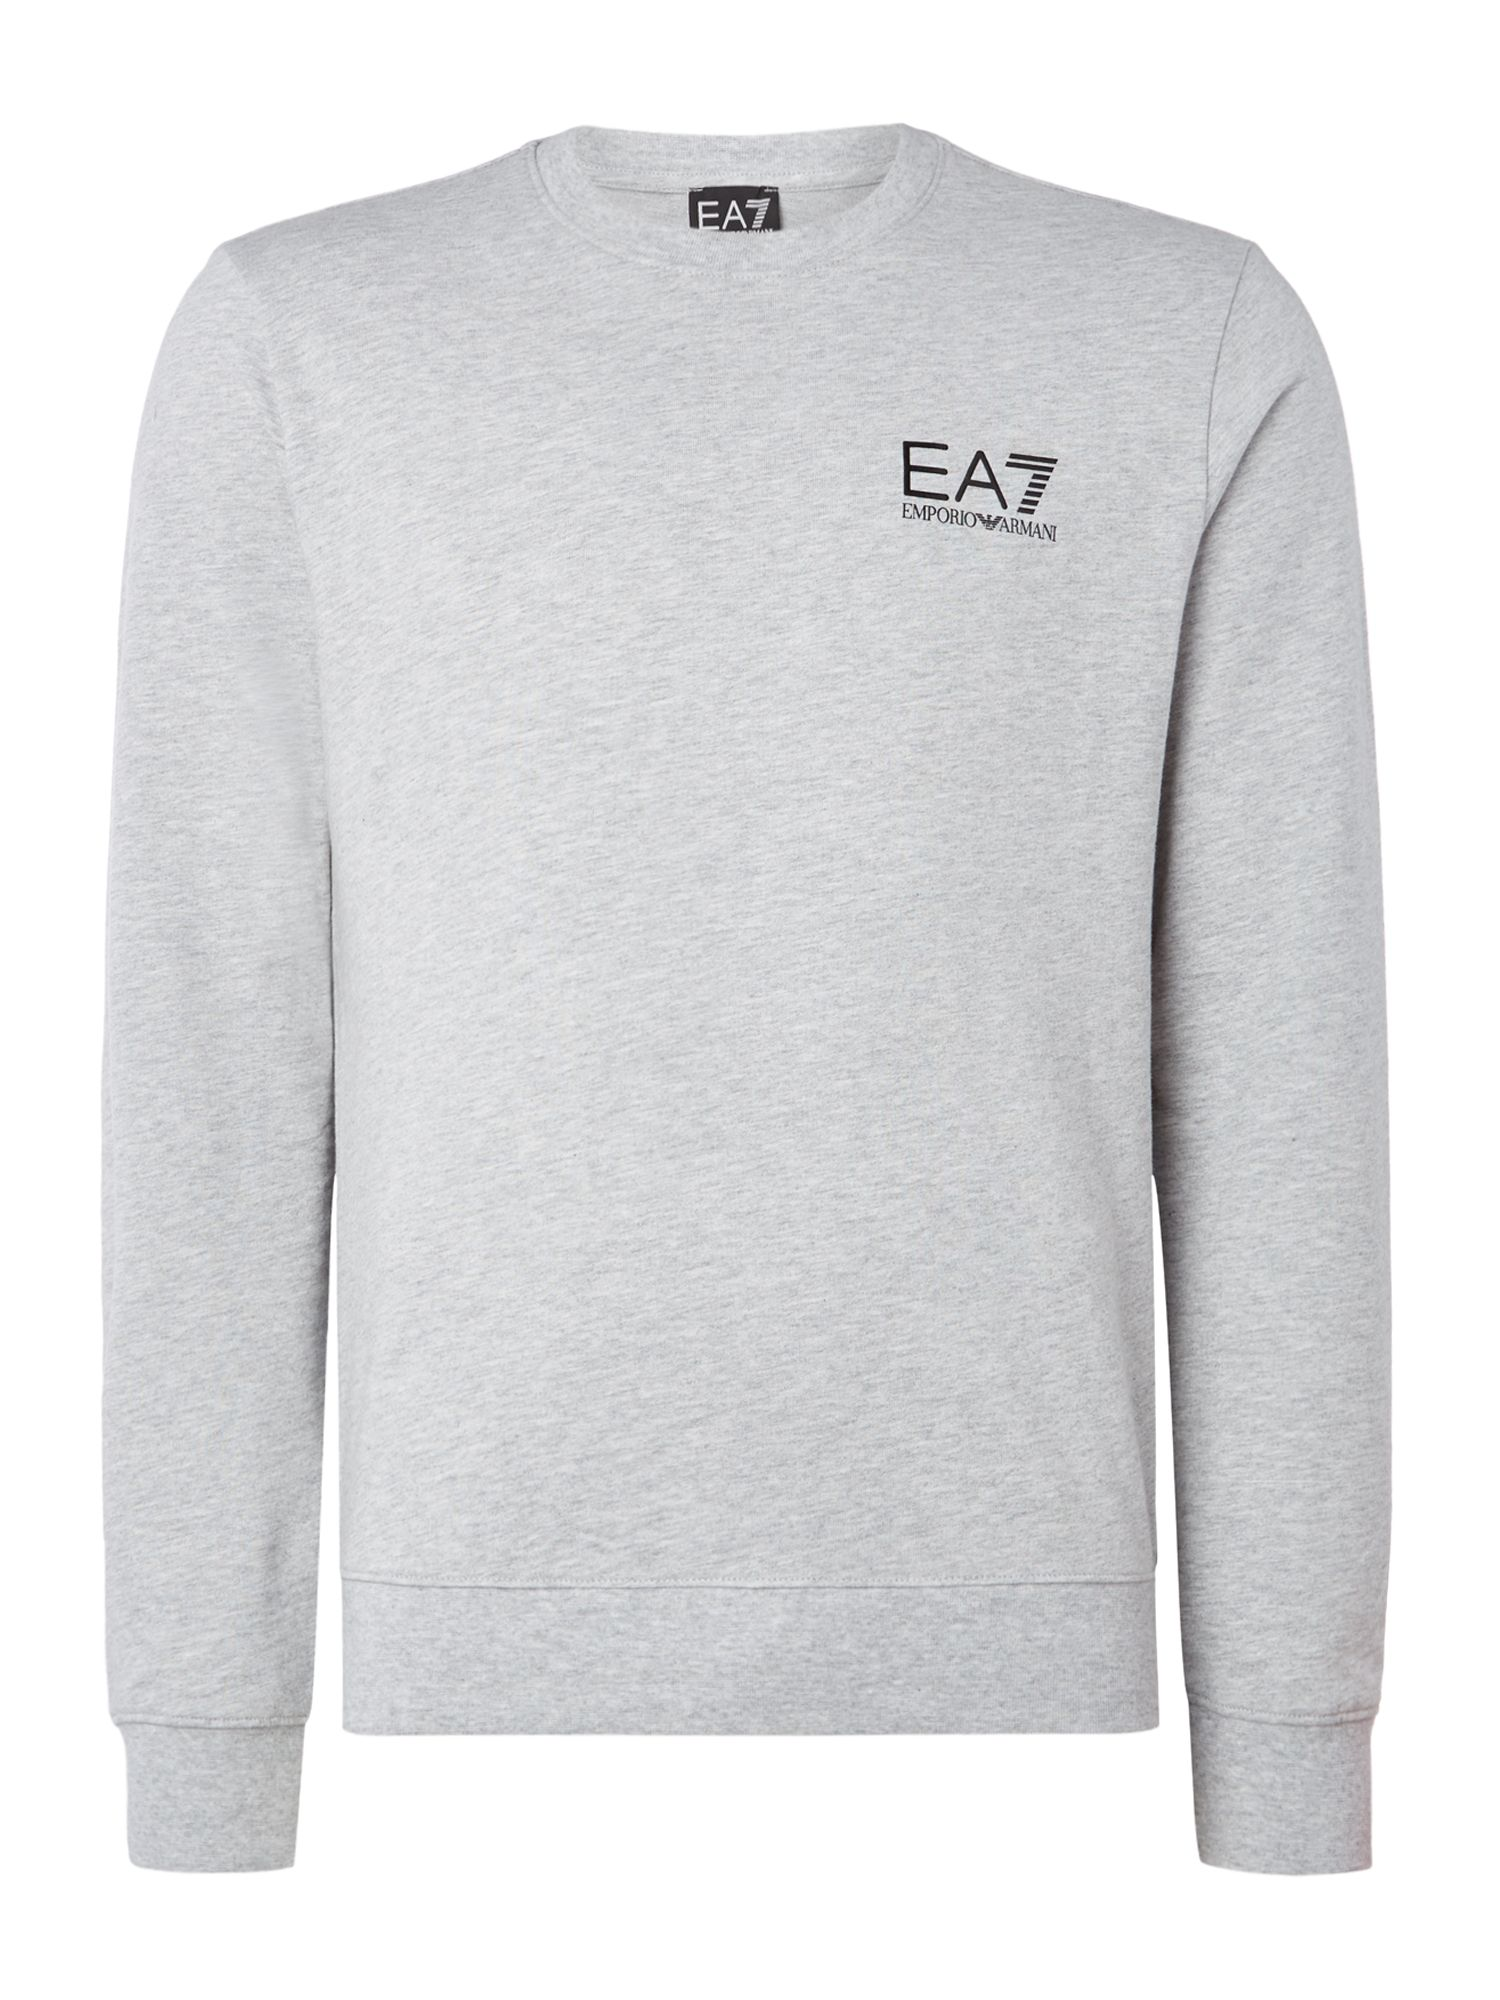 Men's EA7 Core ID crew neck, Grey